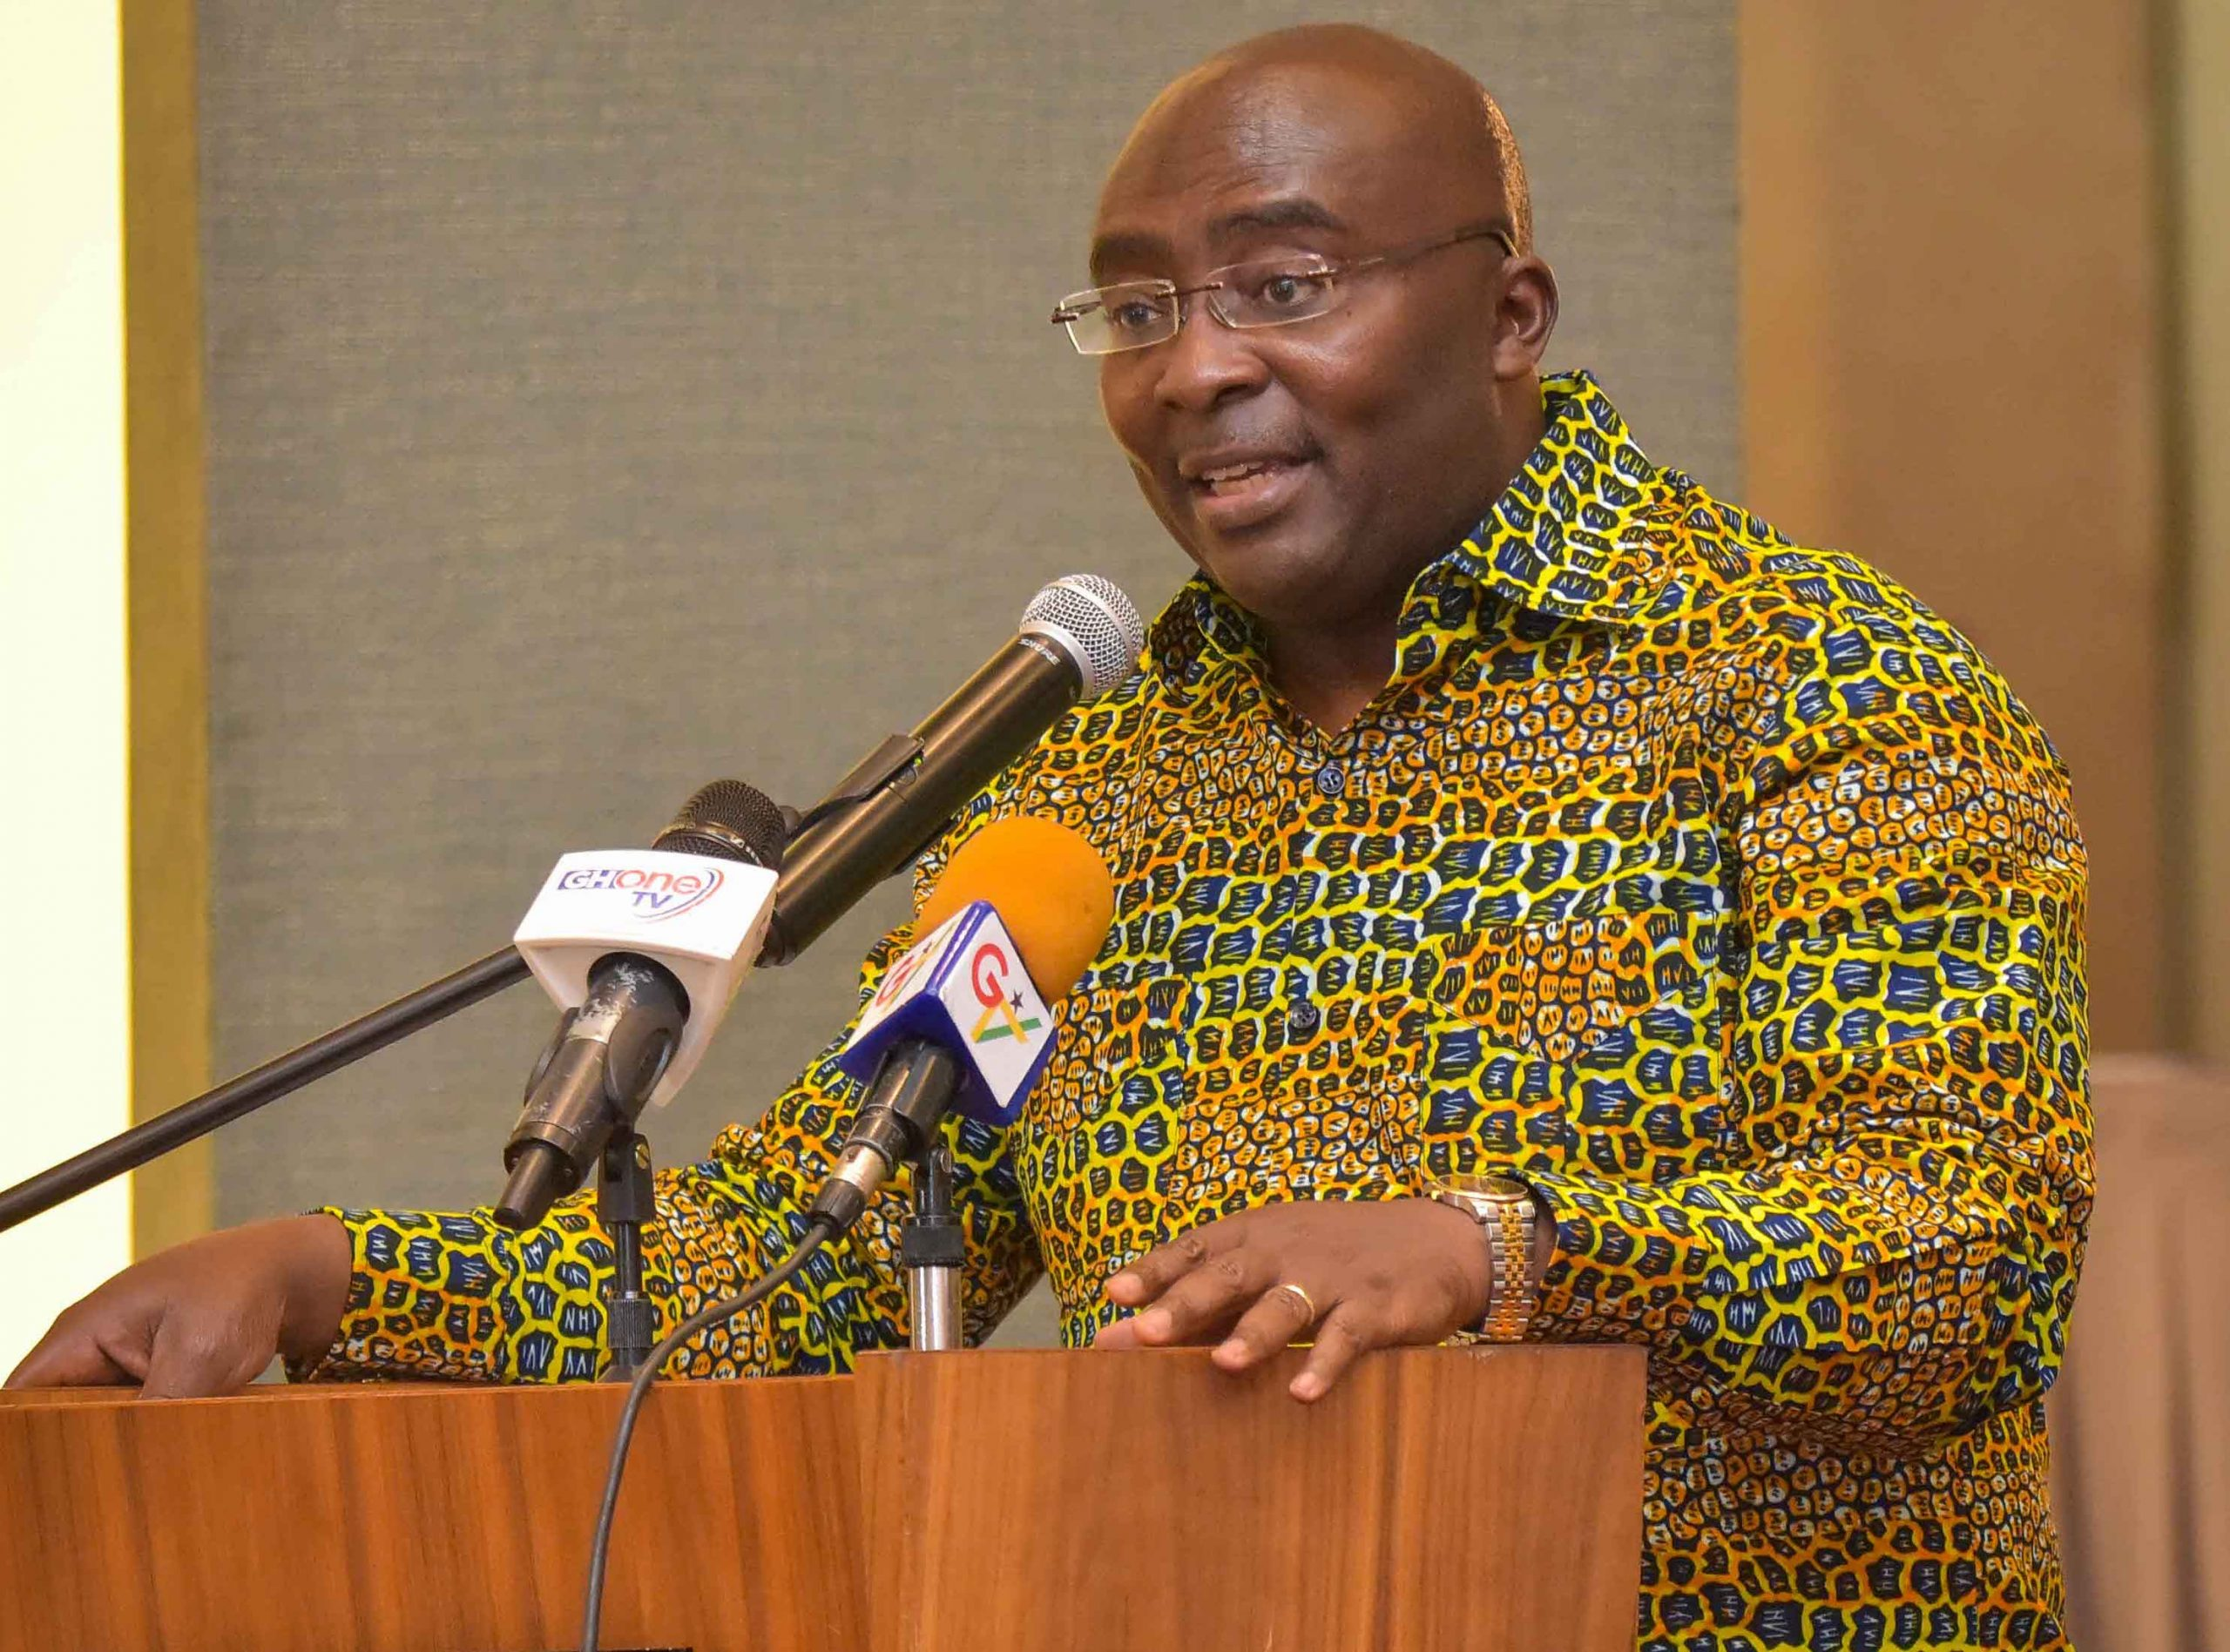 #Fix-the-country-movement#: Government Has Been Fixing The Country Since 2017- Bawumia